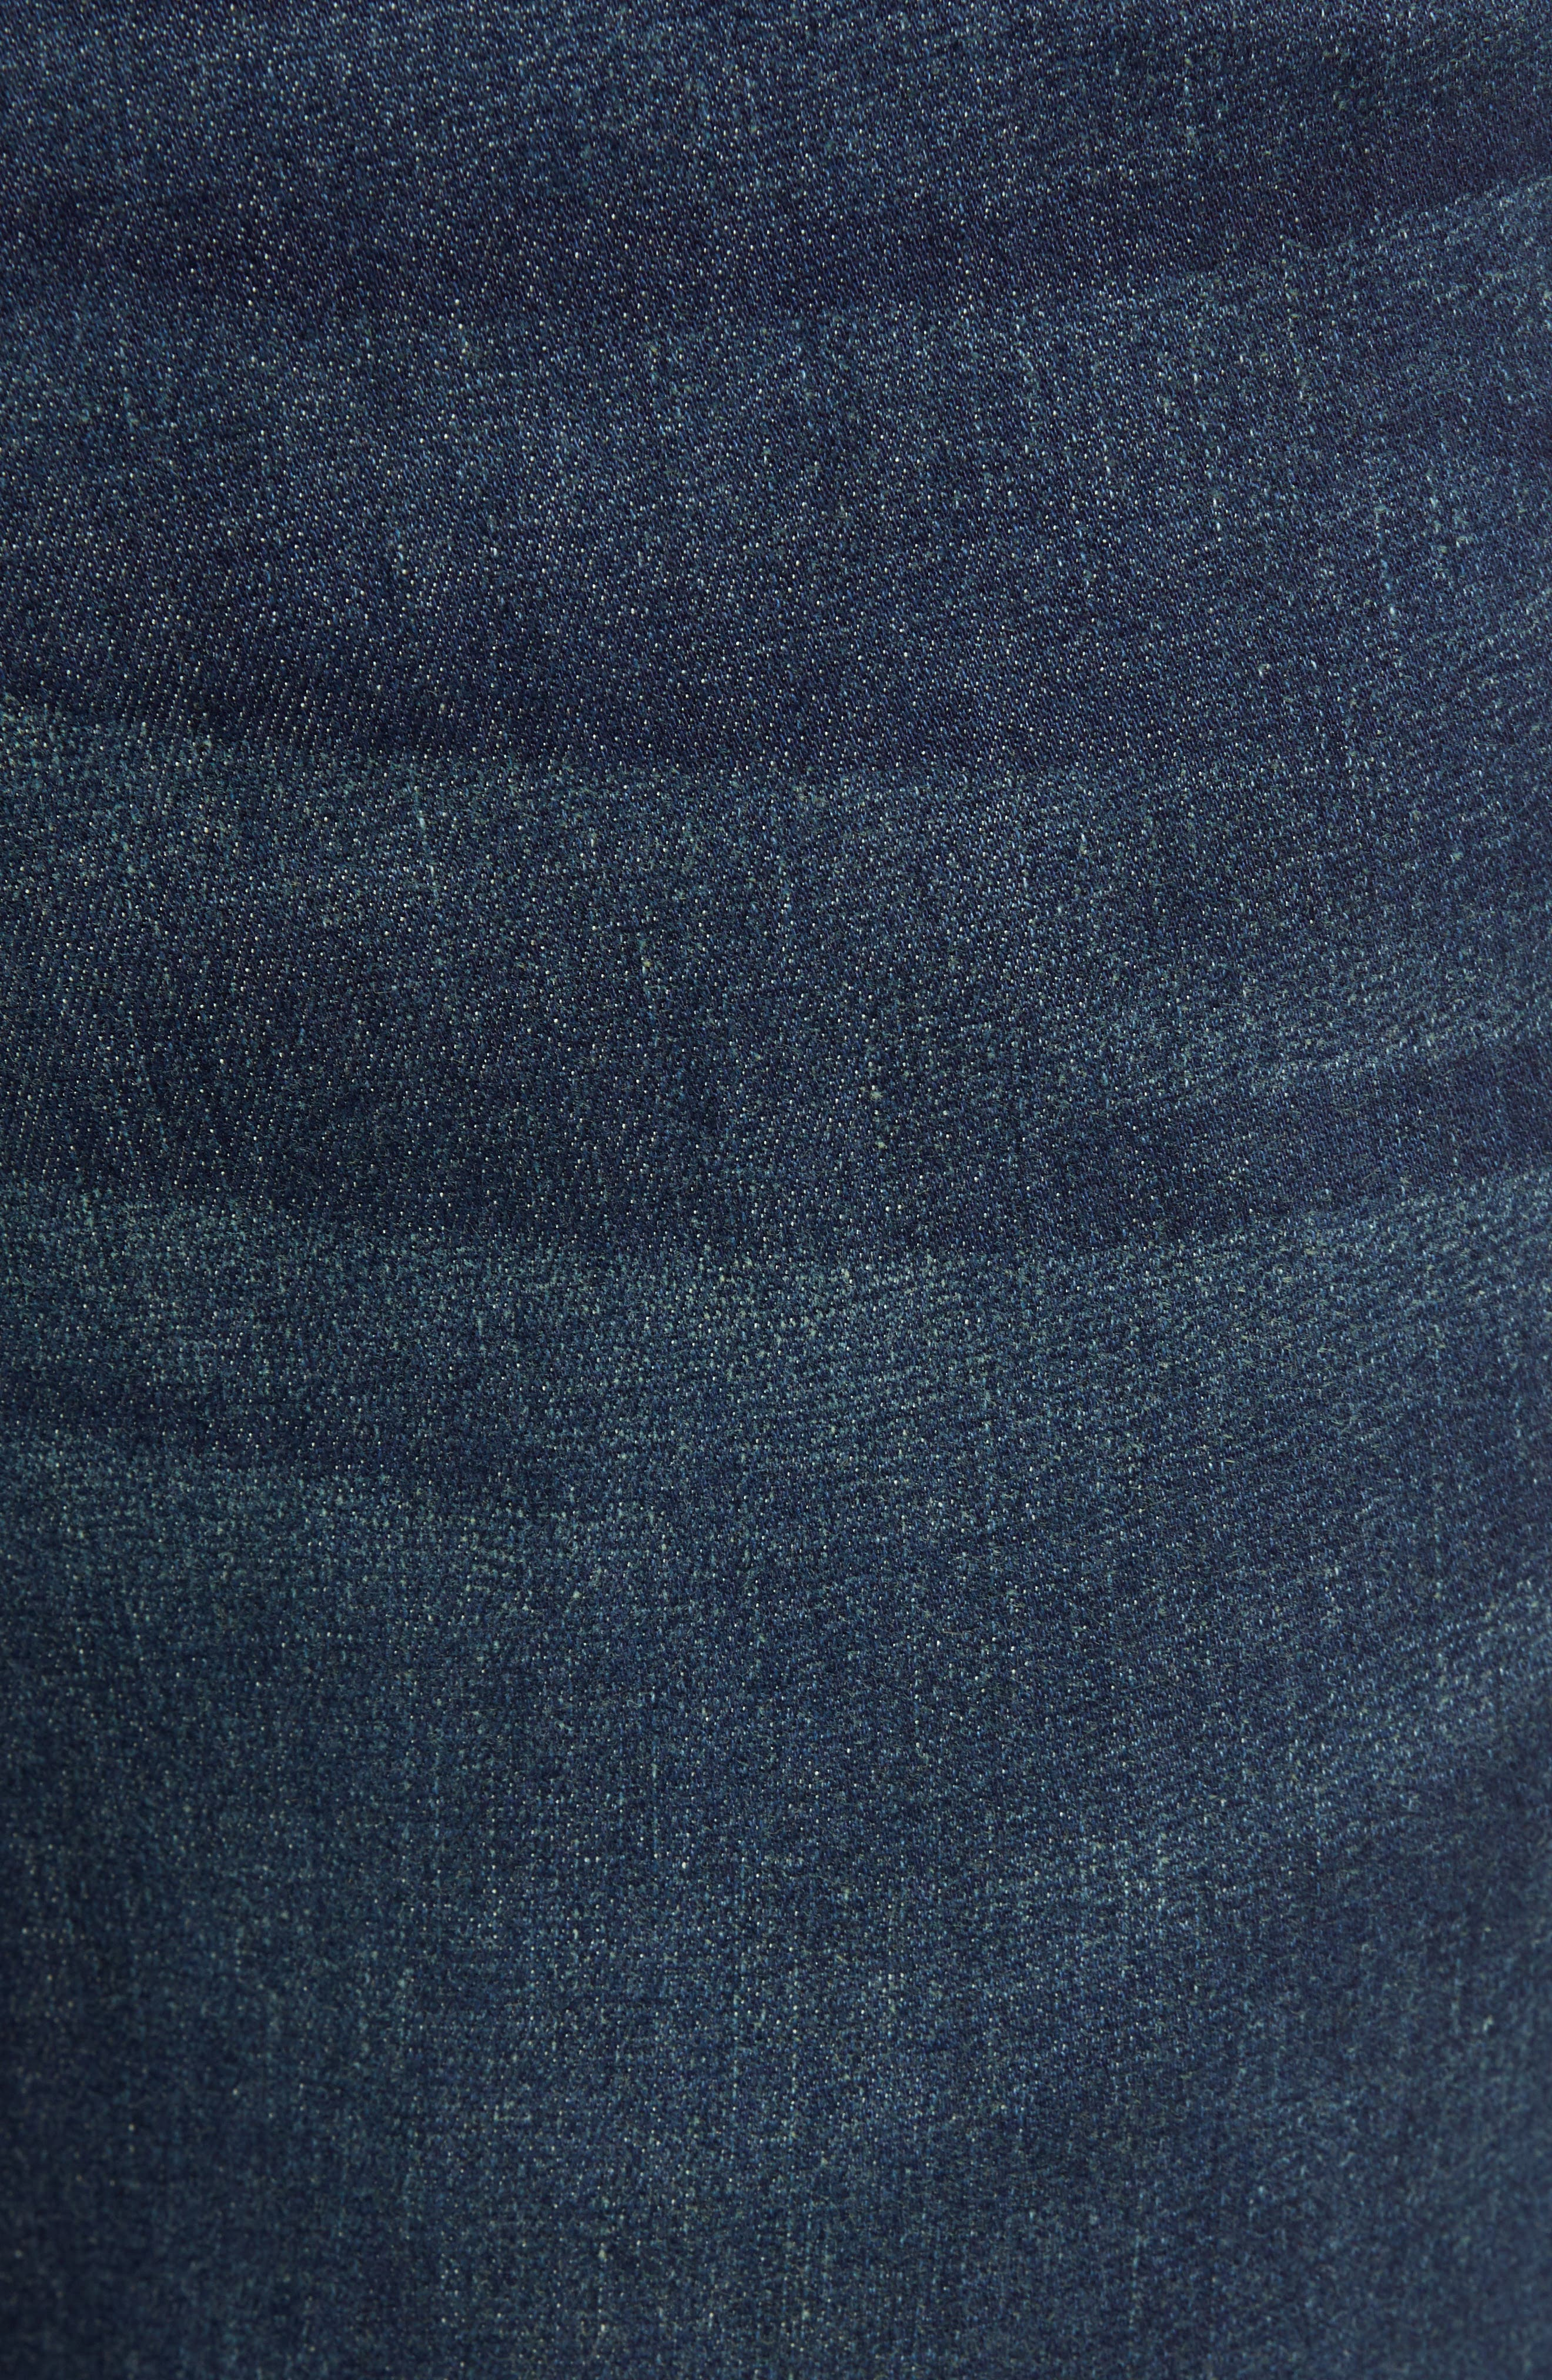 Costa Rica Vintage Regular Fit Jeans,                             Alternate thumbnail 5, color,                             RINSE WASH